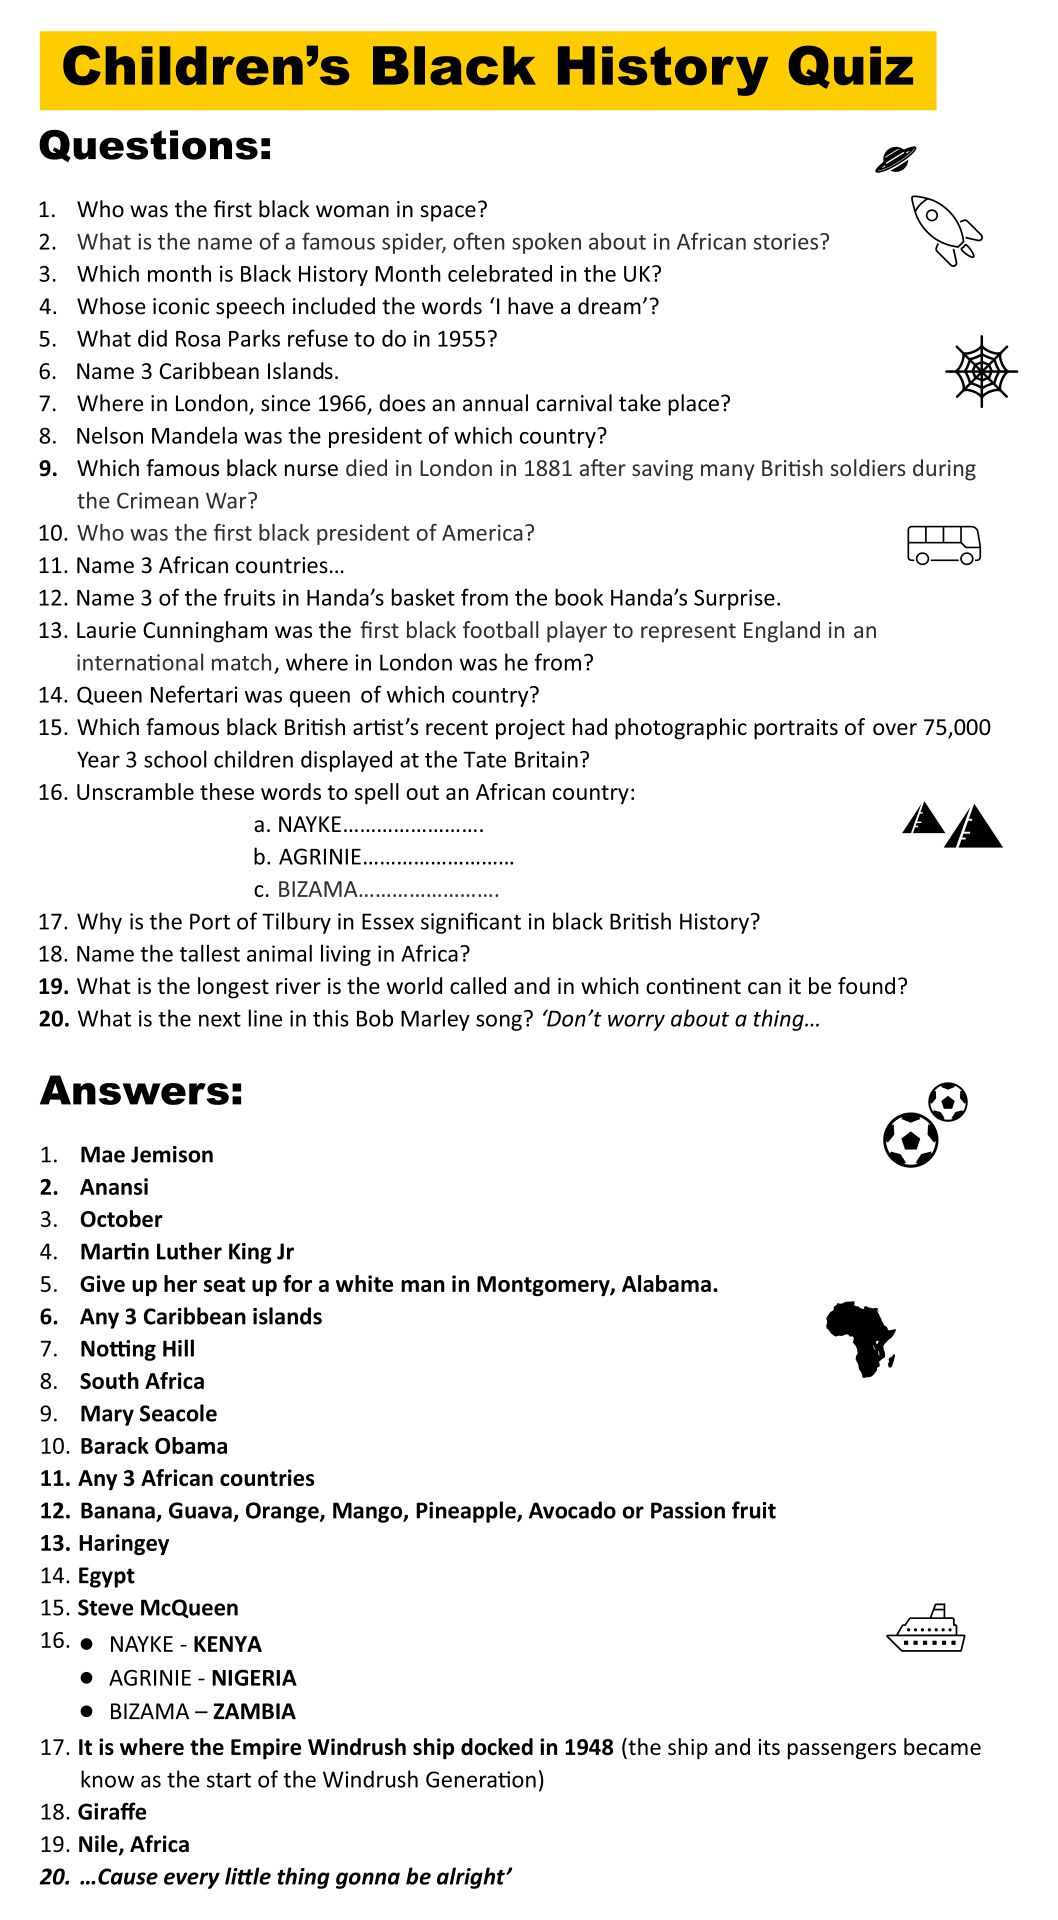 History Trivia Questions And Answers Printable